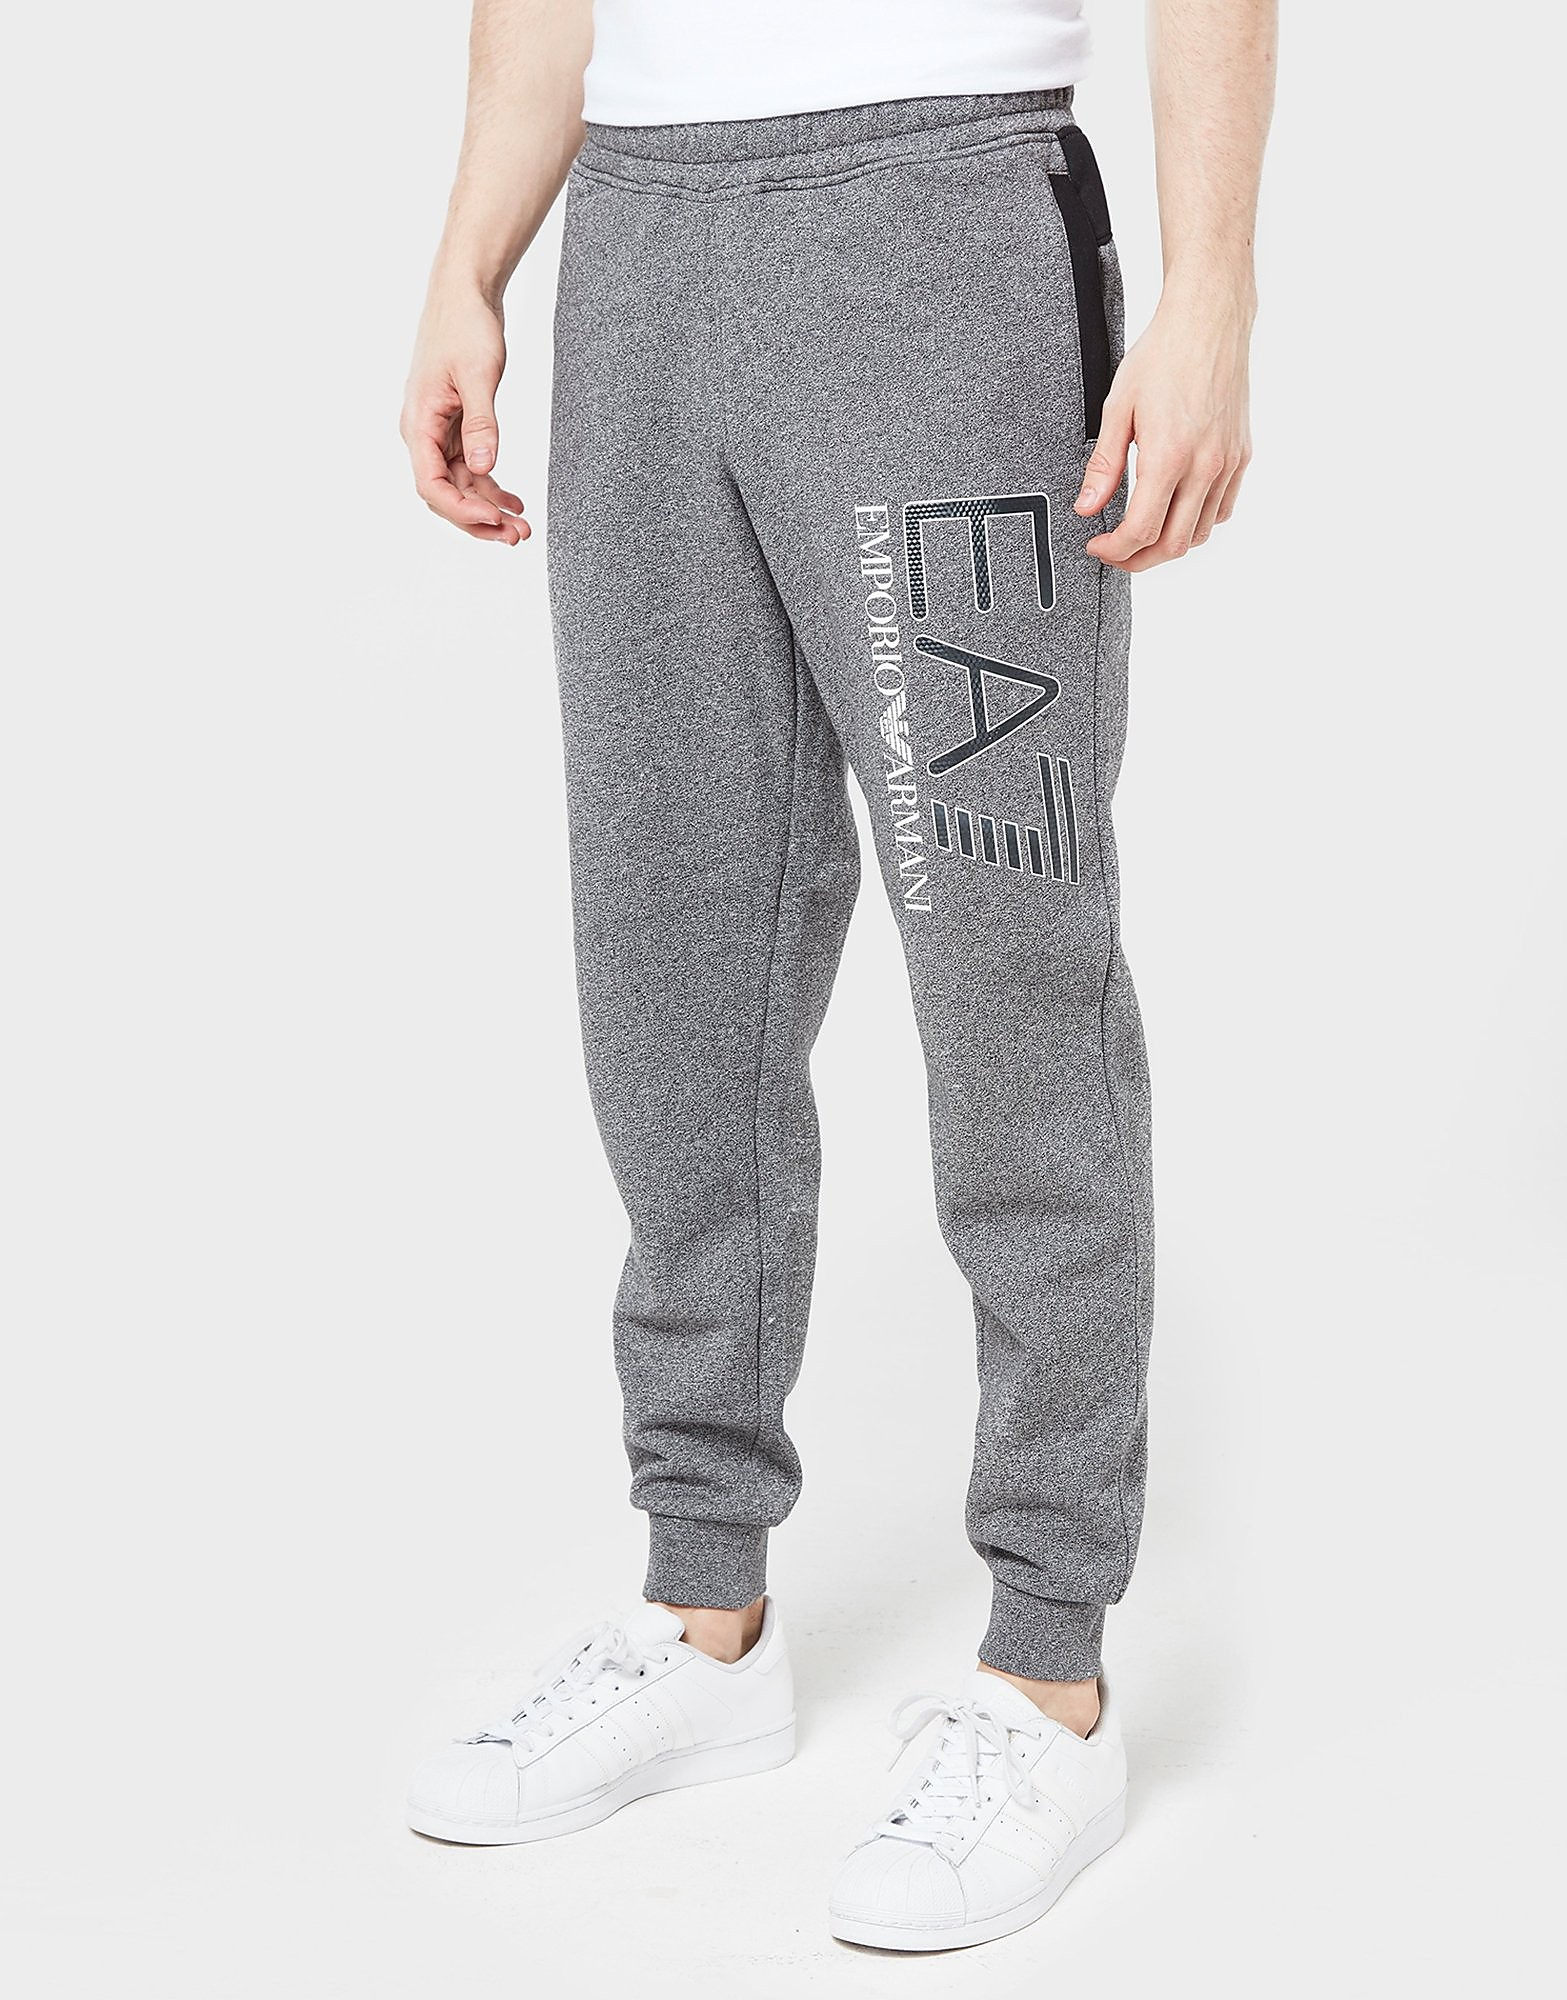 Emporio Armani EA7 Cuffed Fleece Pants